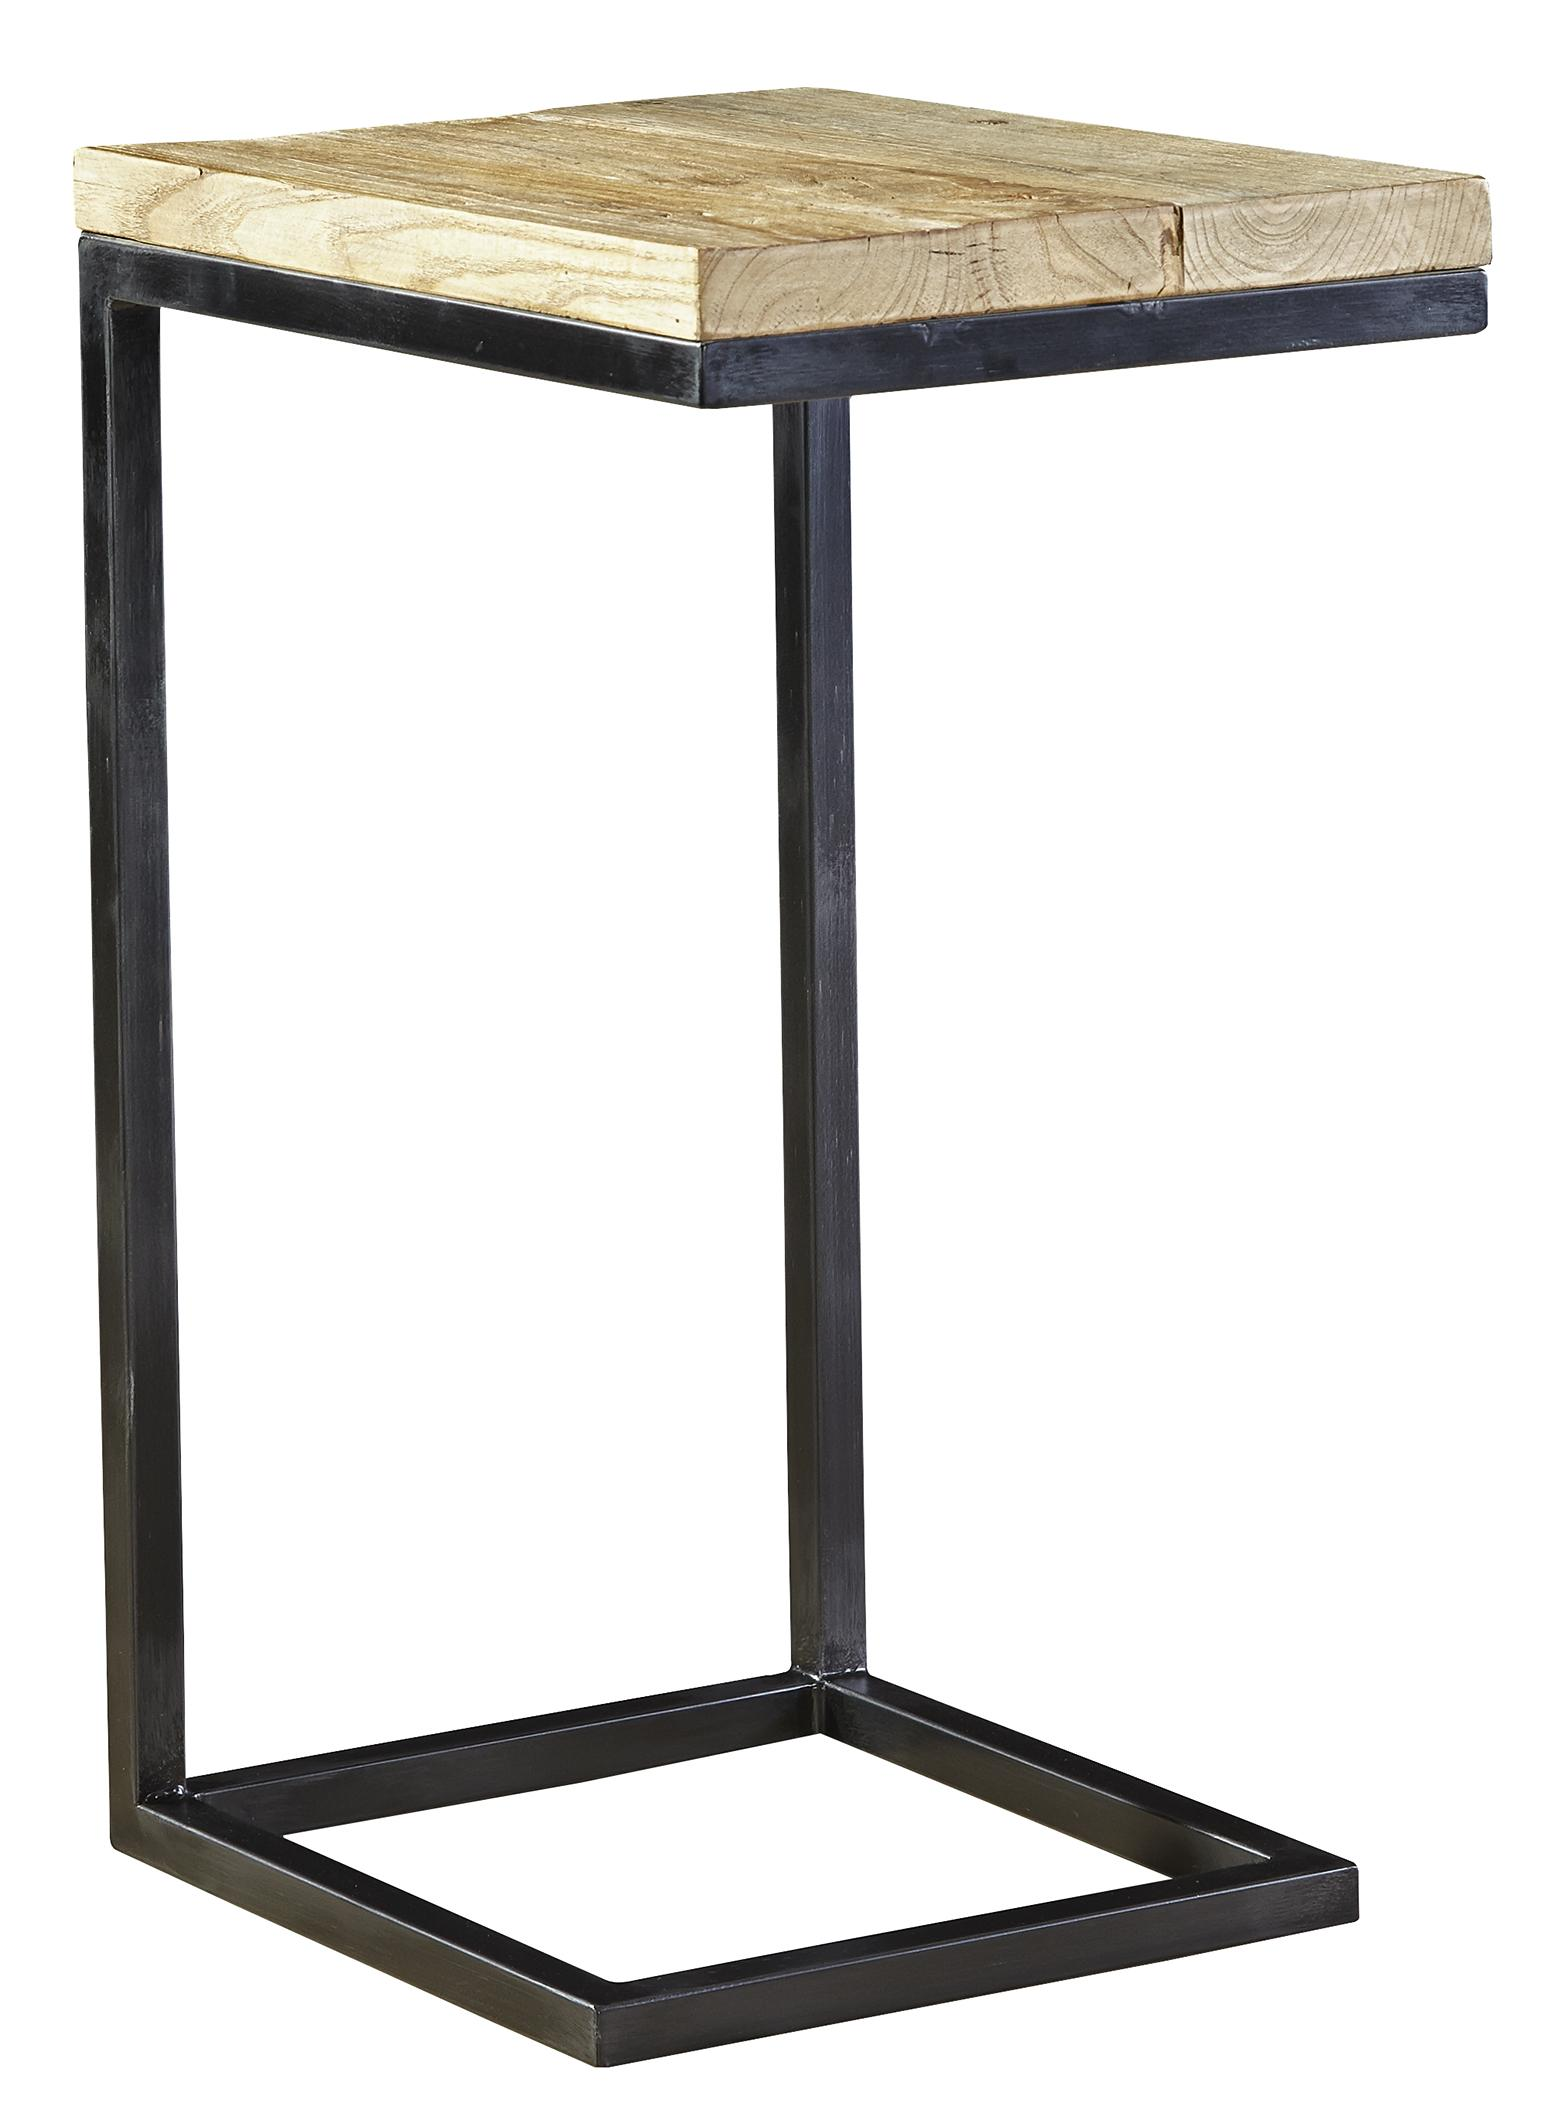 Furniture Classics Accents Martini Table - Item Number: 72108WA